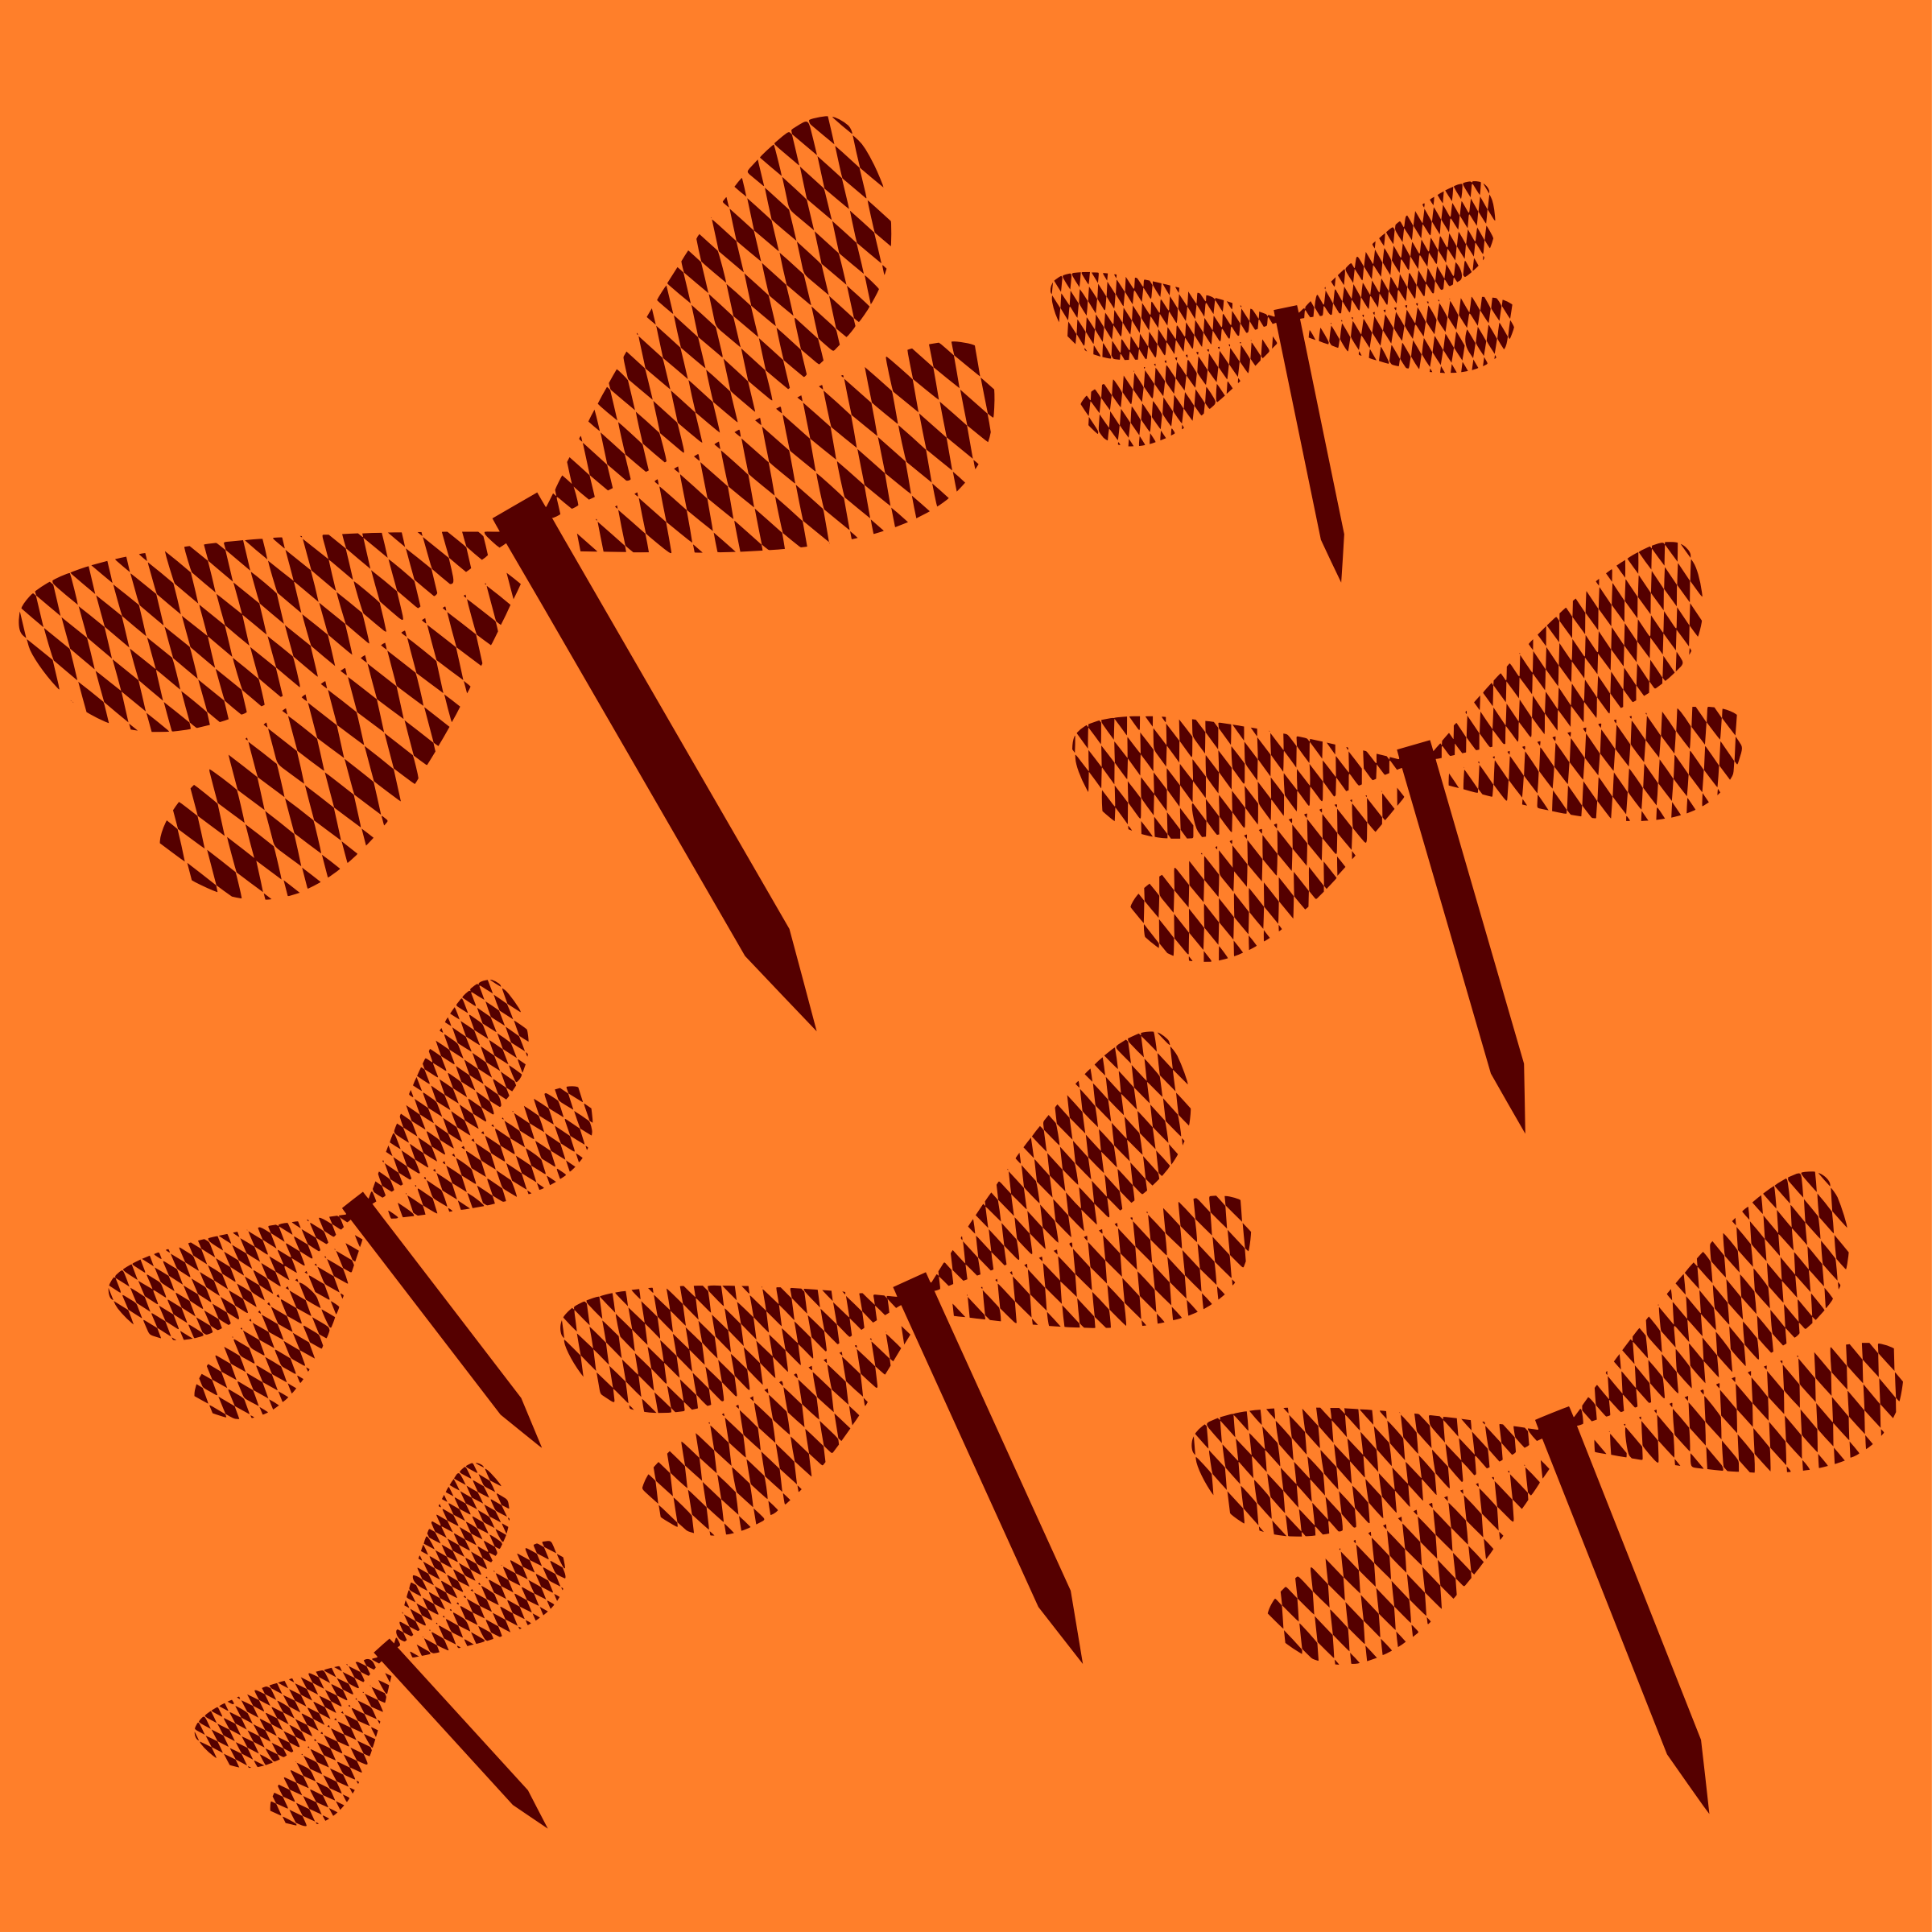 Dragonflies vectorized by Firkin